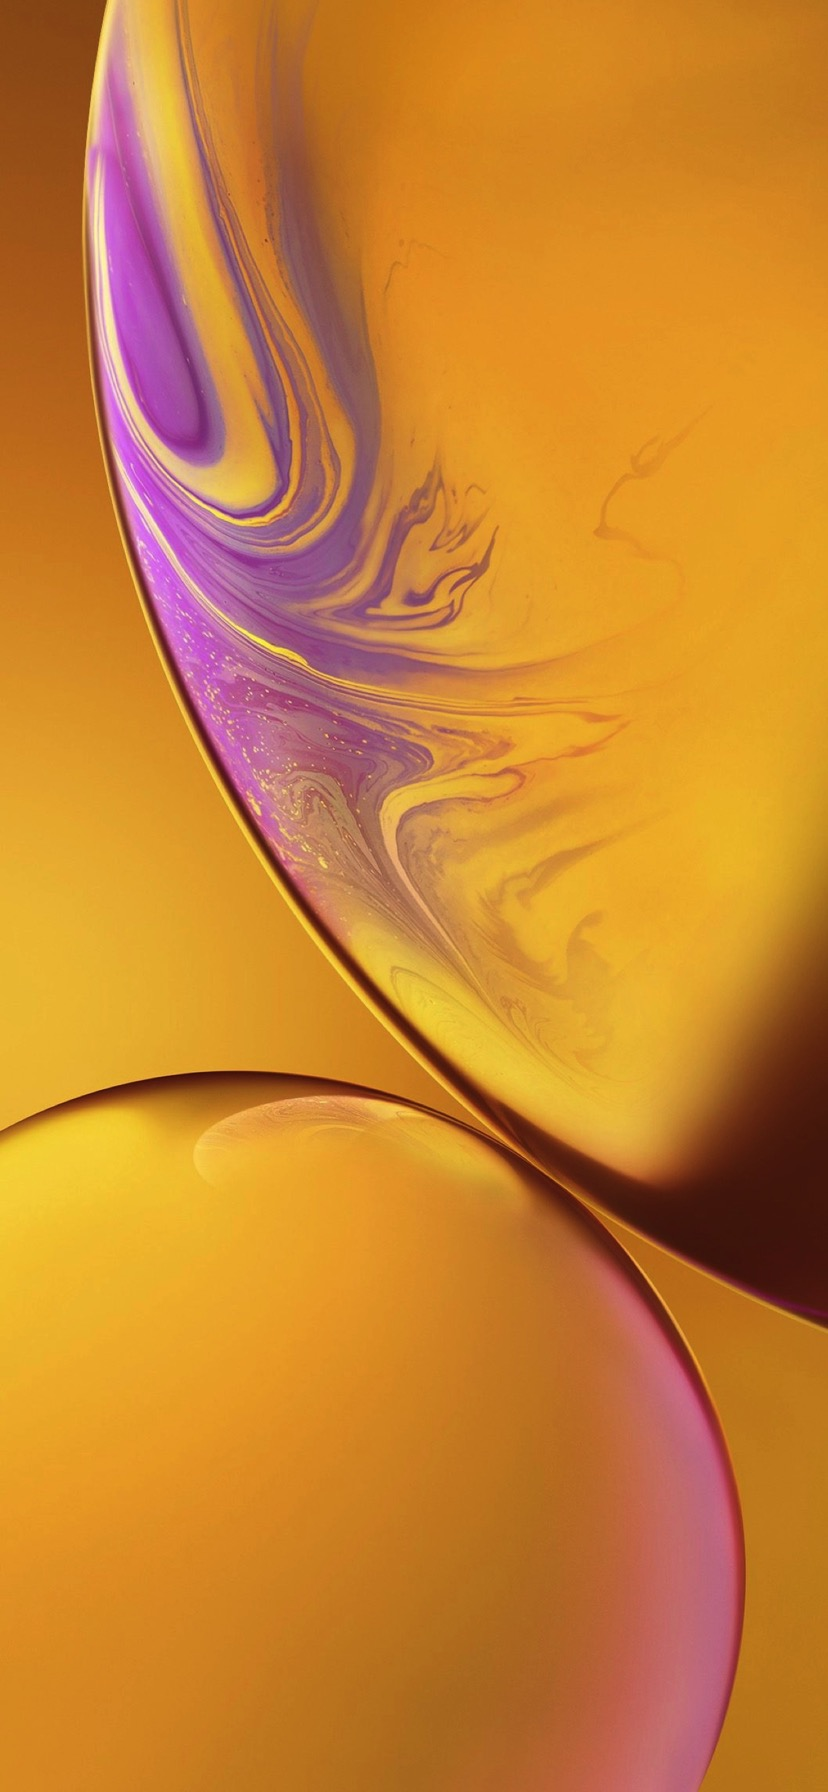 iPhone XR 壁紙 wallpaper 1100